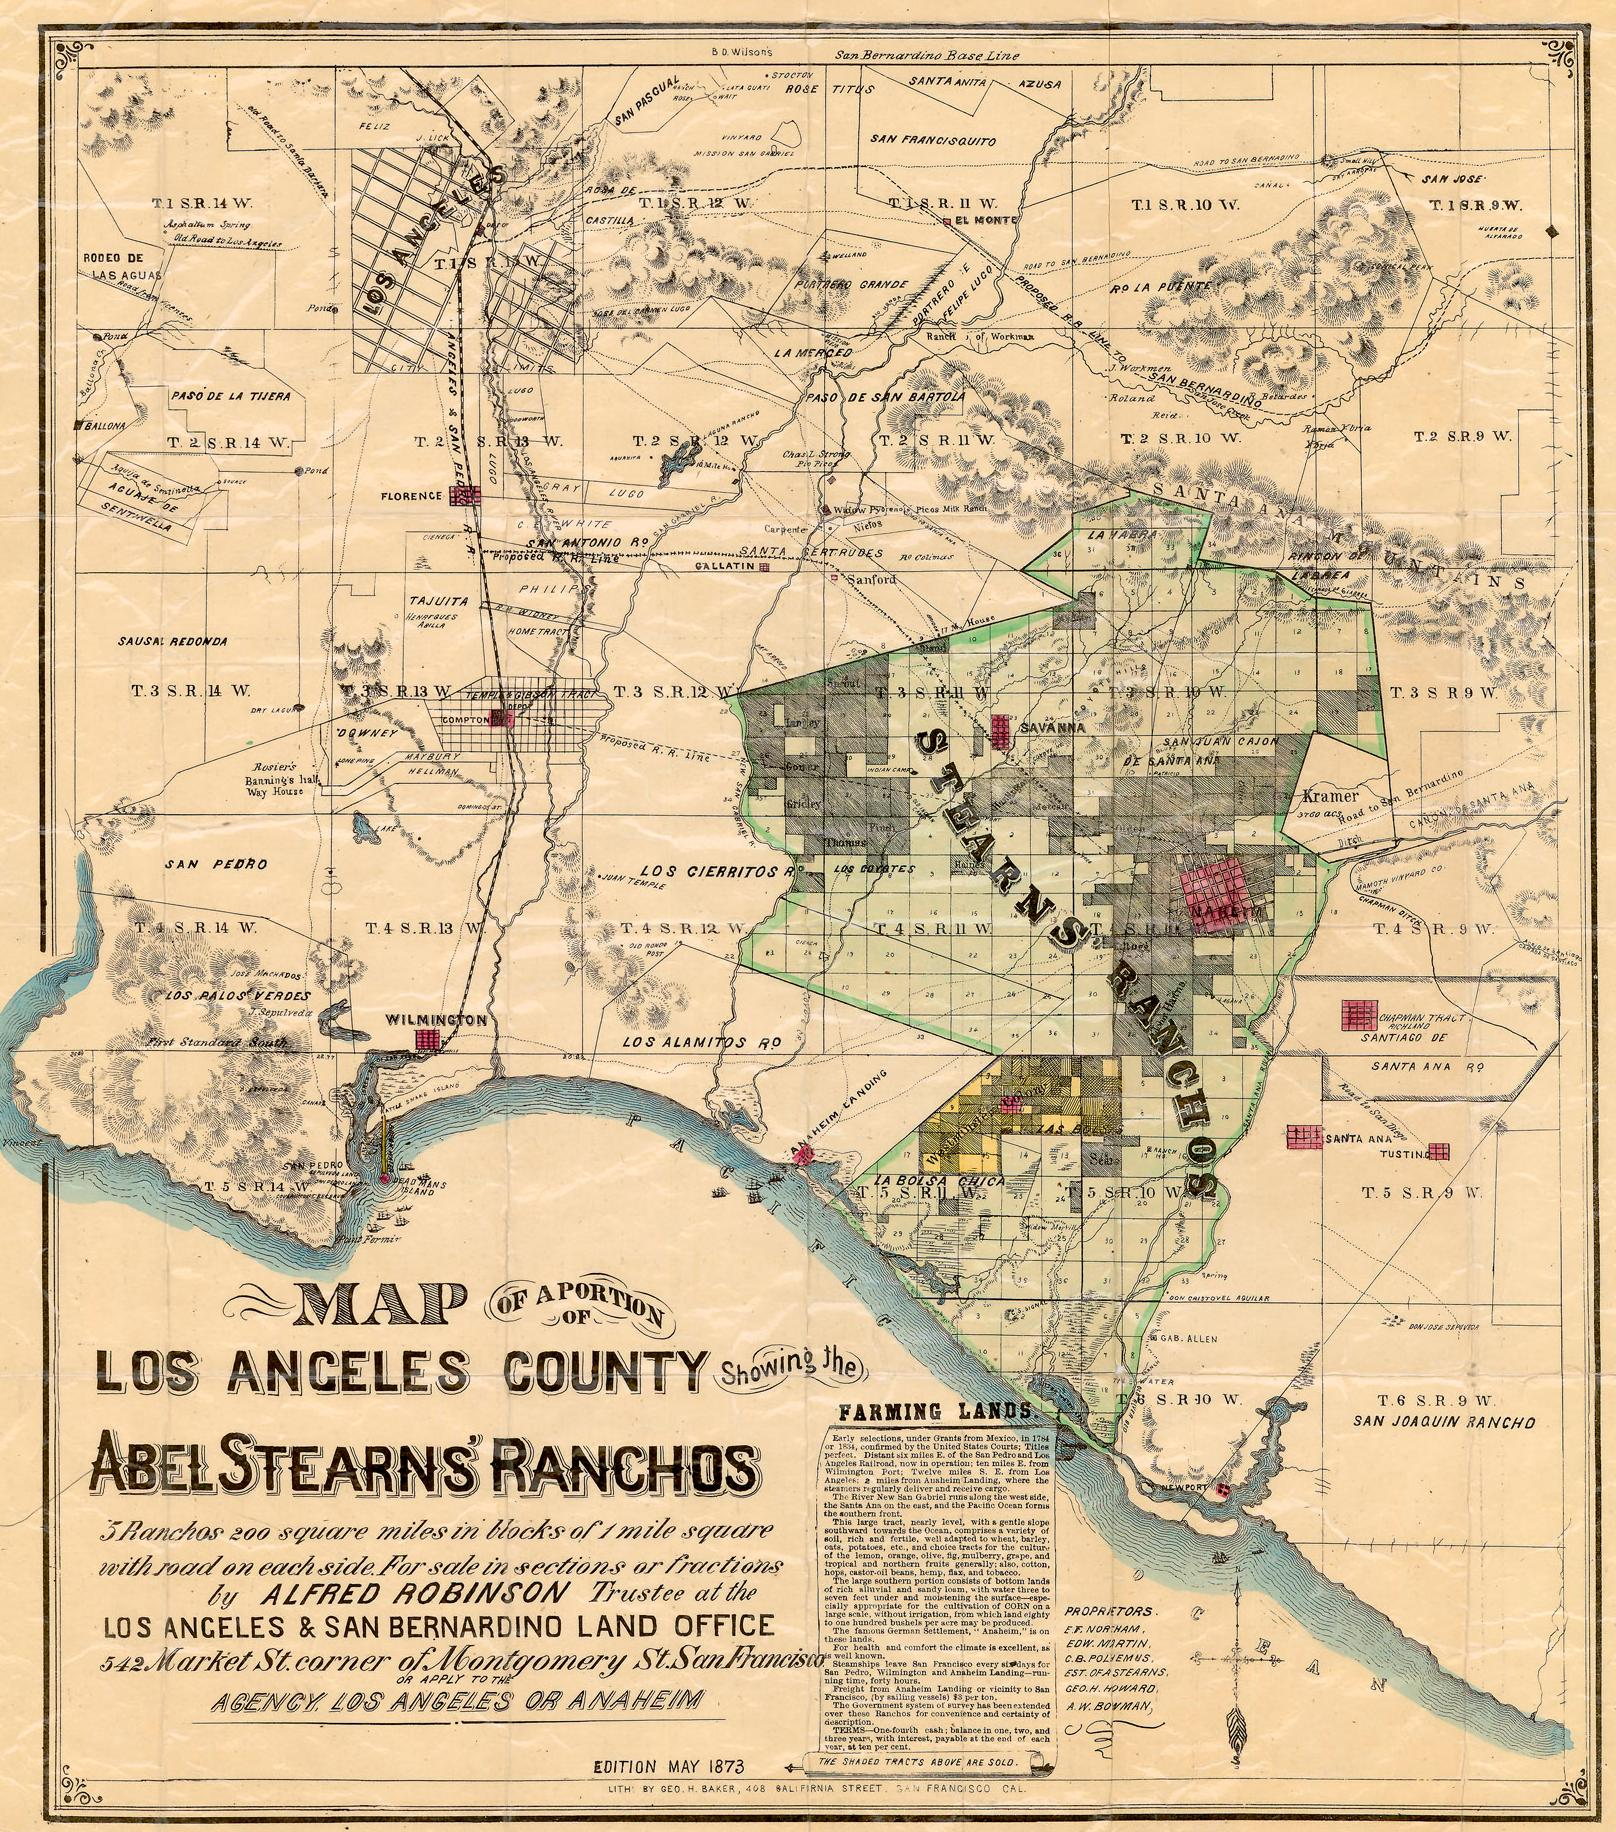 History of L.A. to Anaheim Roads « Myrons Mopeds